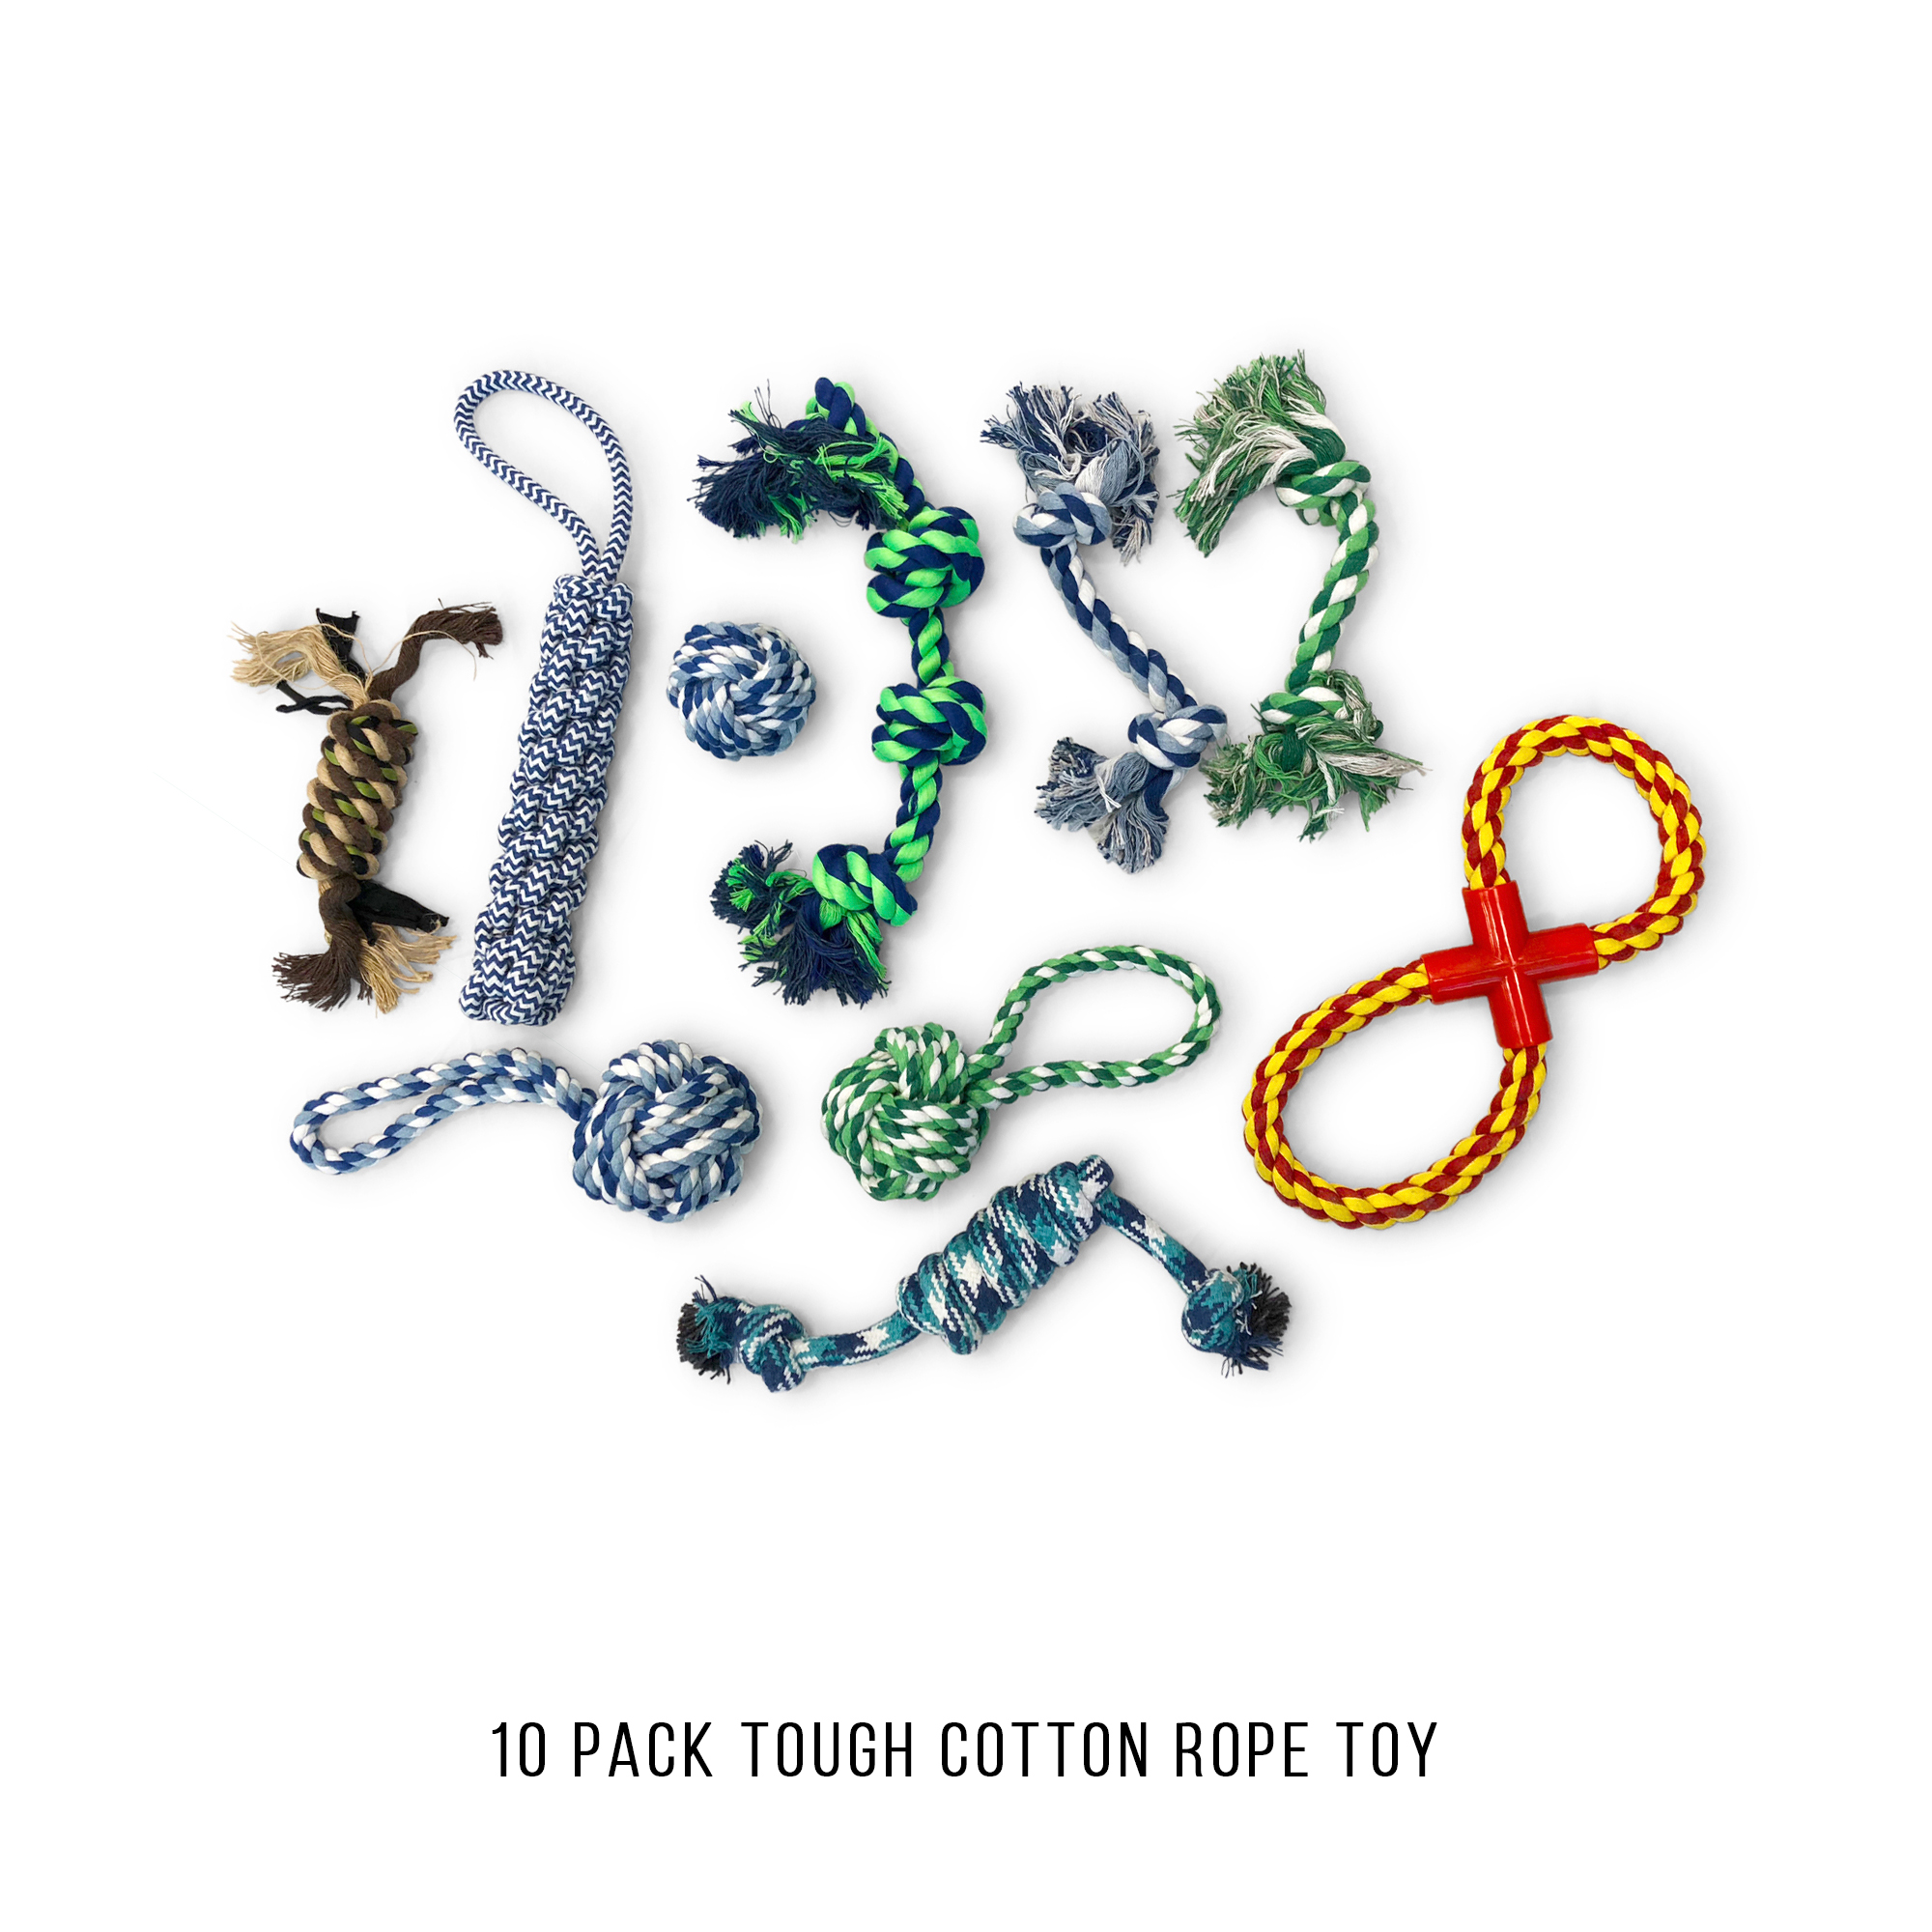 Pet Craft Supply Tough Durable Thick Washable Cotton Rope Chew Fetch Tug Interactive Teething Dental Flossing Teeth Cleaning Dog Toys for Aggressive Chewers or Puppies Pack of 10